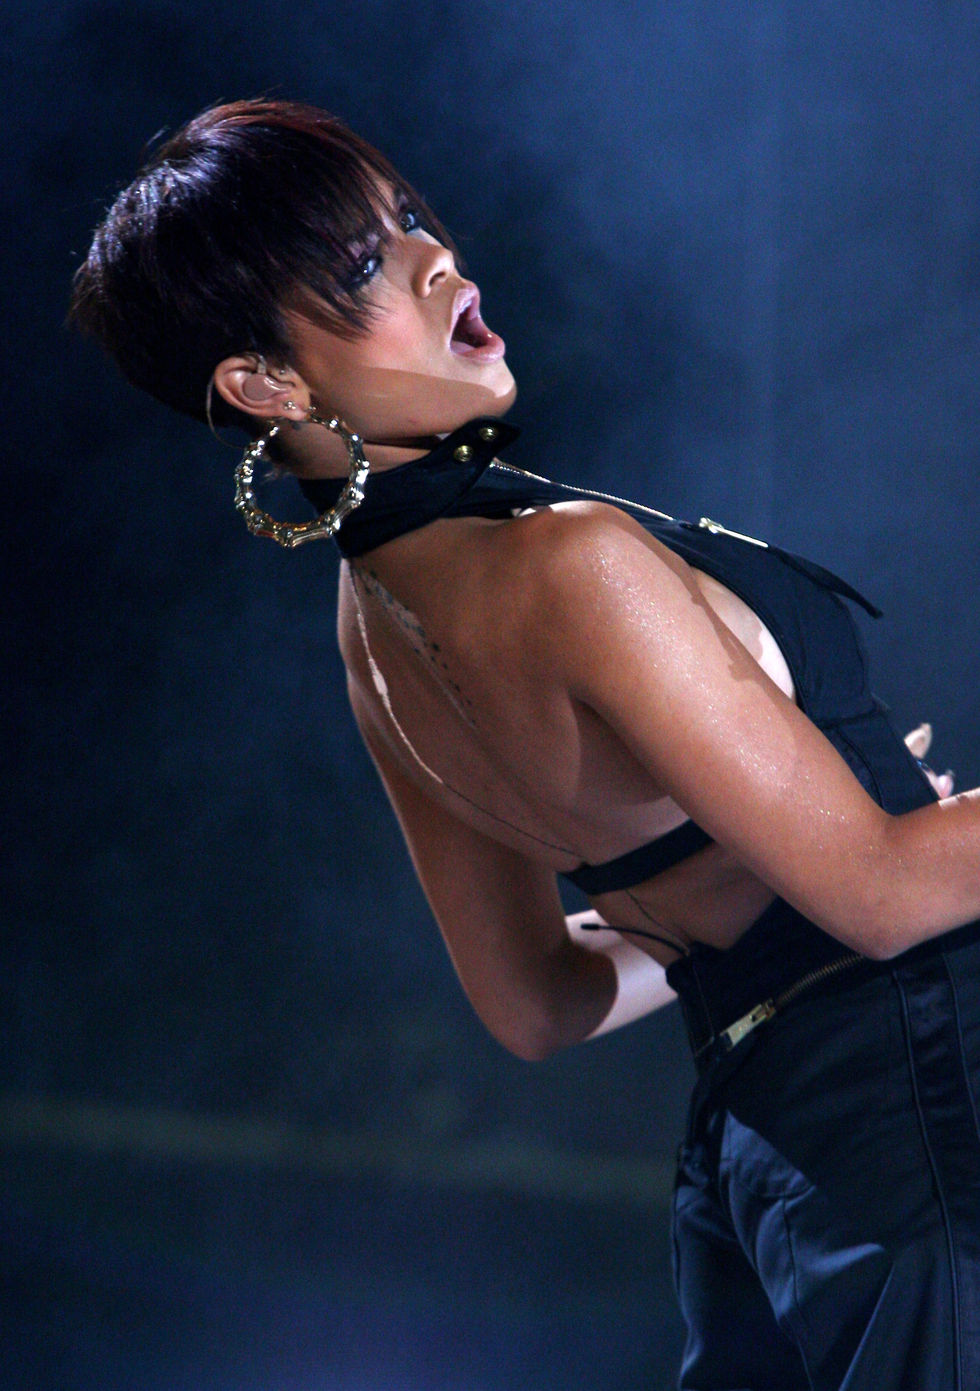 rihanna-performs-at-mtv-mobile-bang-concert-in-milan-01